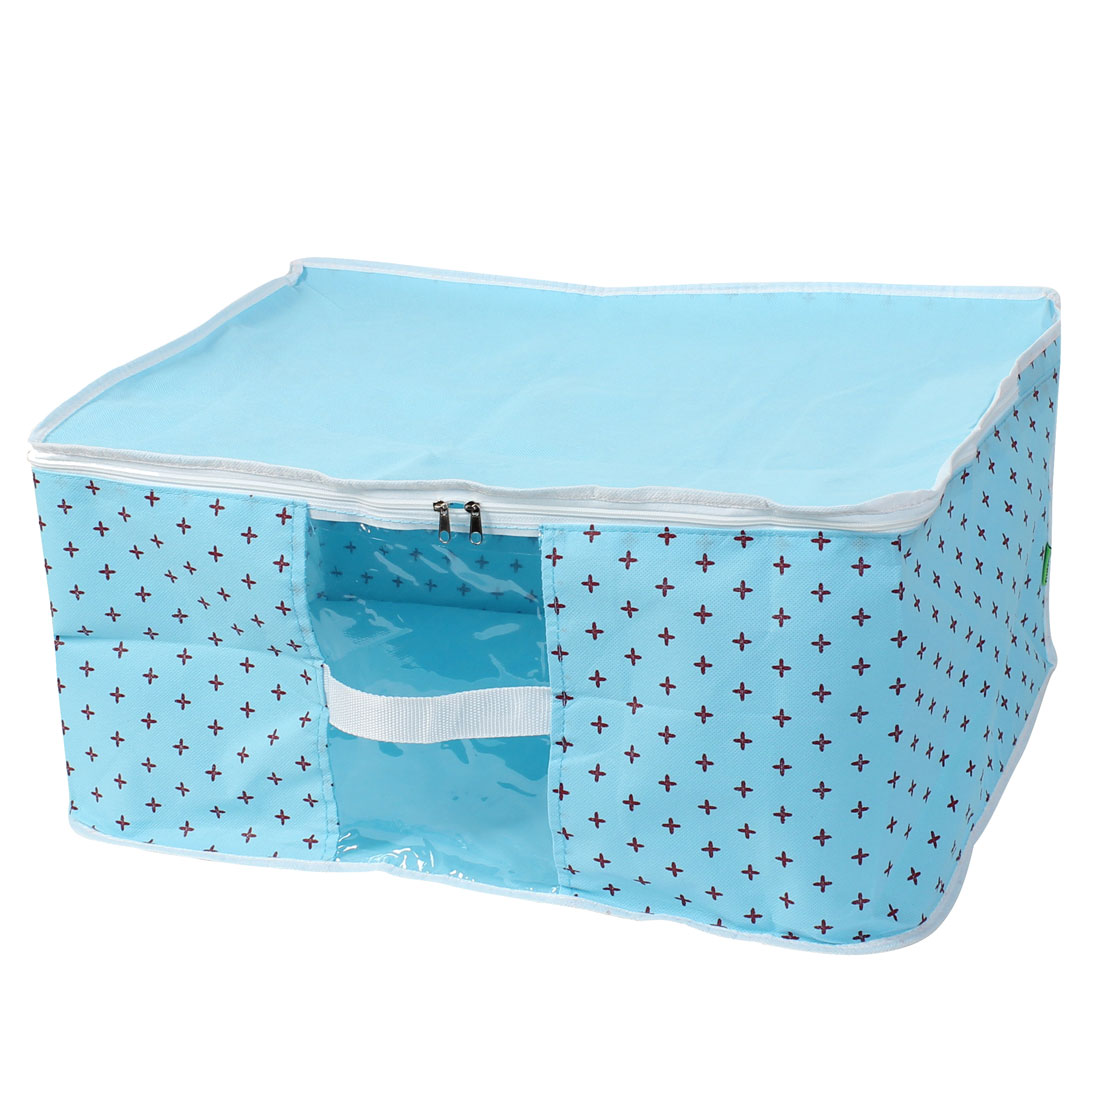 Non Woven Fabric Towel Carpet Clothing Organizer Storage Box Baby Blue 52cm Length